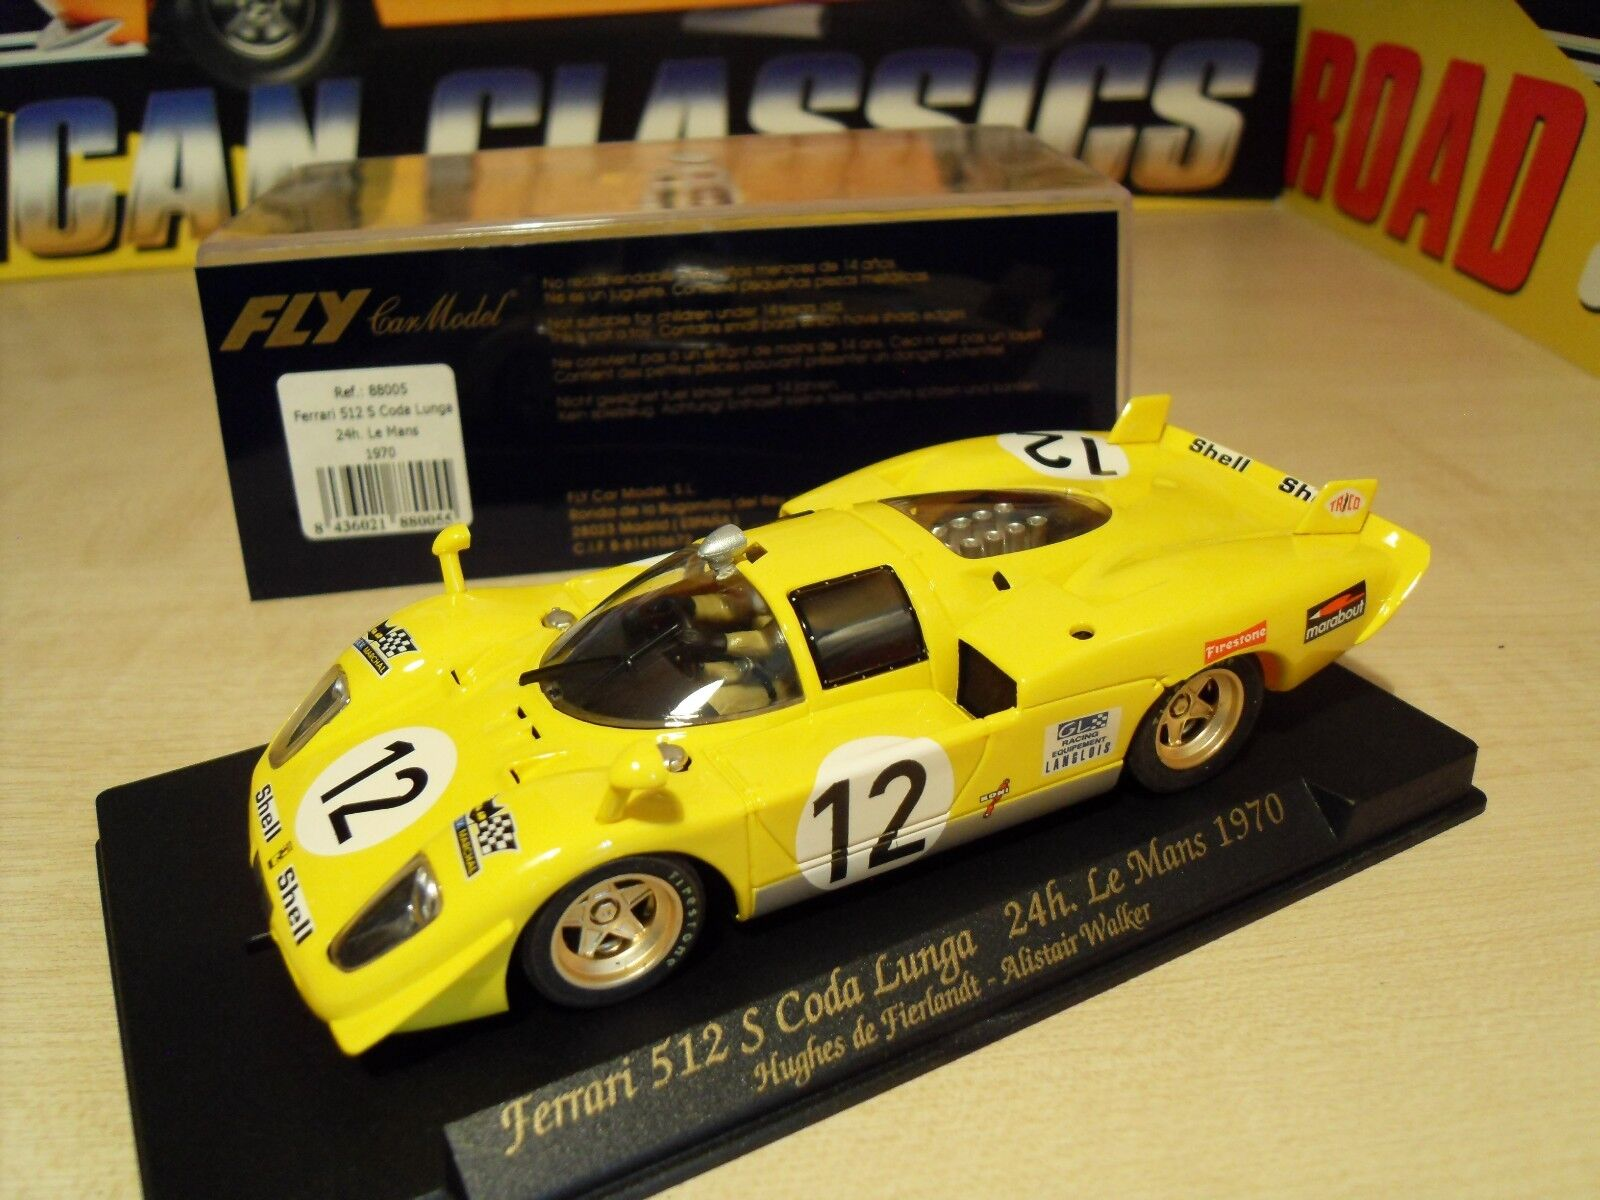 Fly '88005' - Ferrari 512S Coda Lunga '24h Le Mans 1970' - Brand New in Box